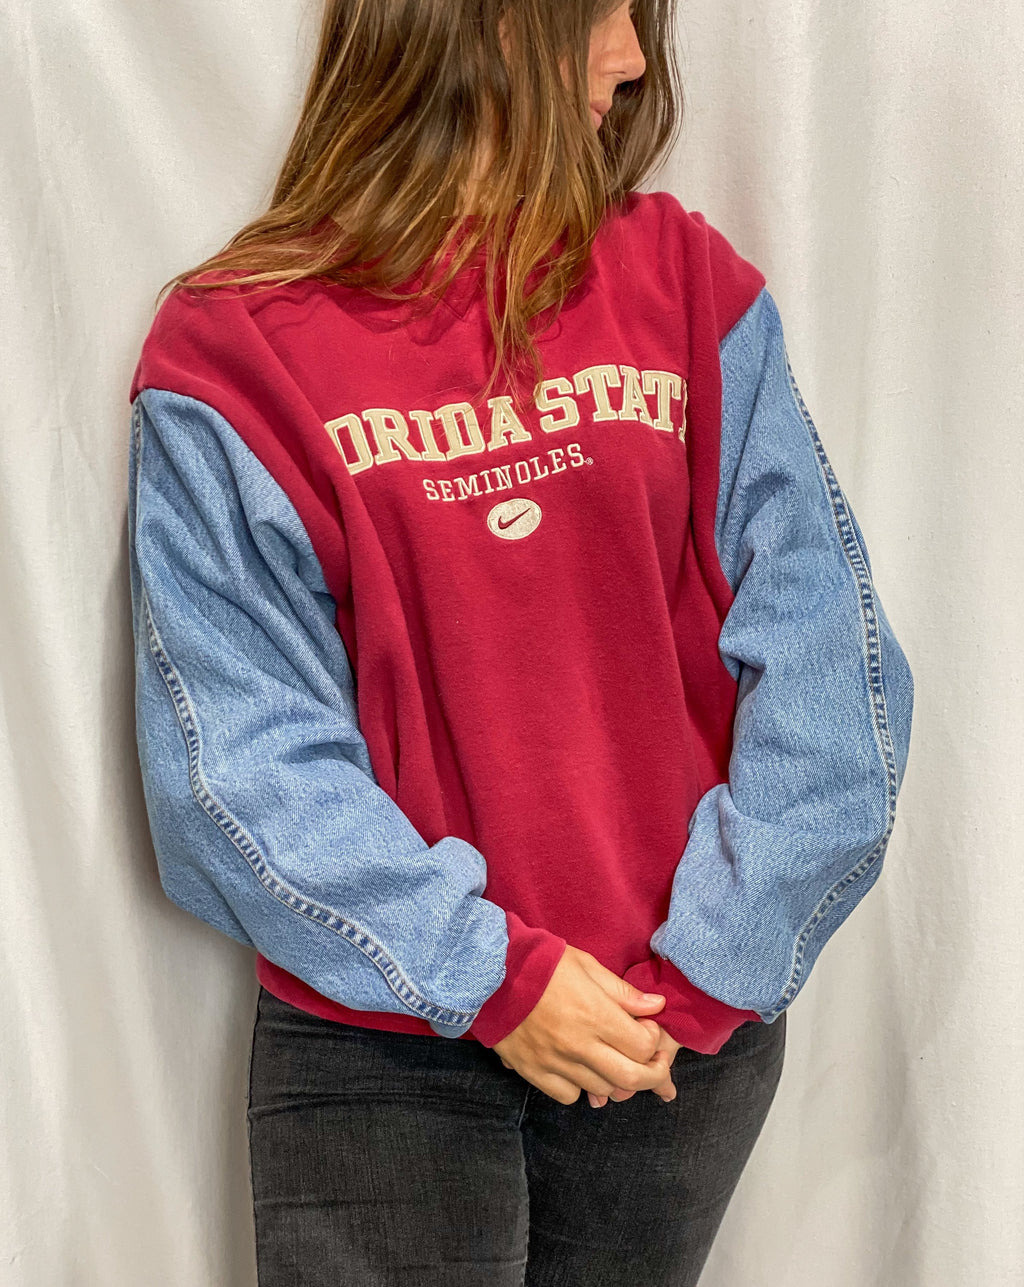 Florida State Seminoles Denim Sleeve Vintage Crewneck Sweatshirt